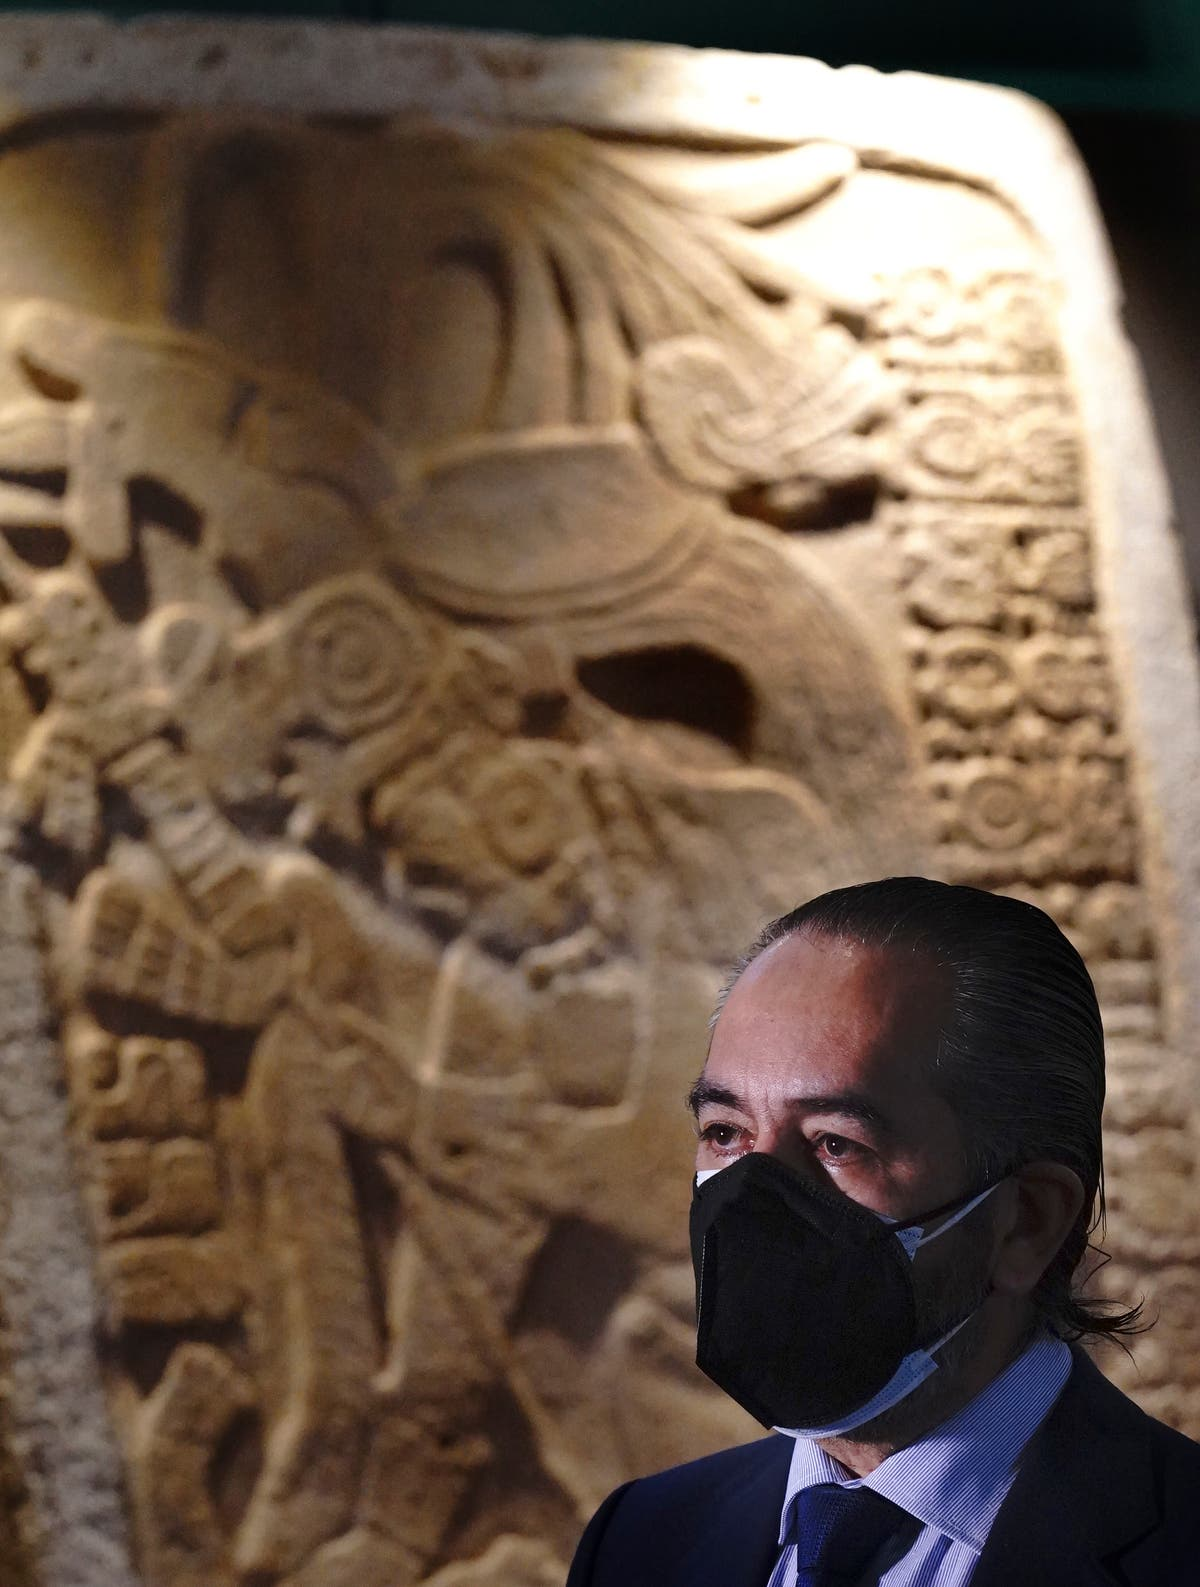 Mexico displays pre-Hispanic artifacts recovered from abroad